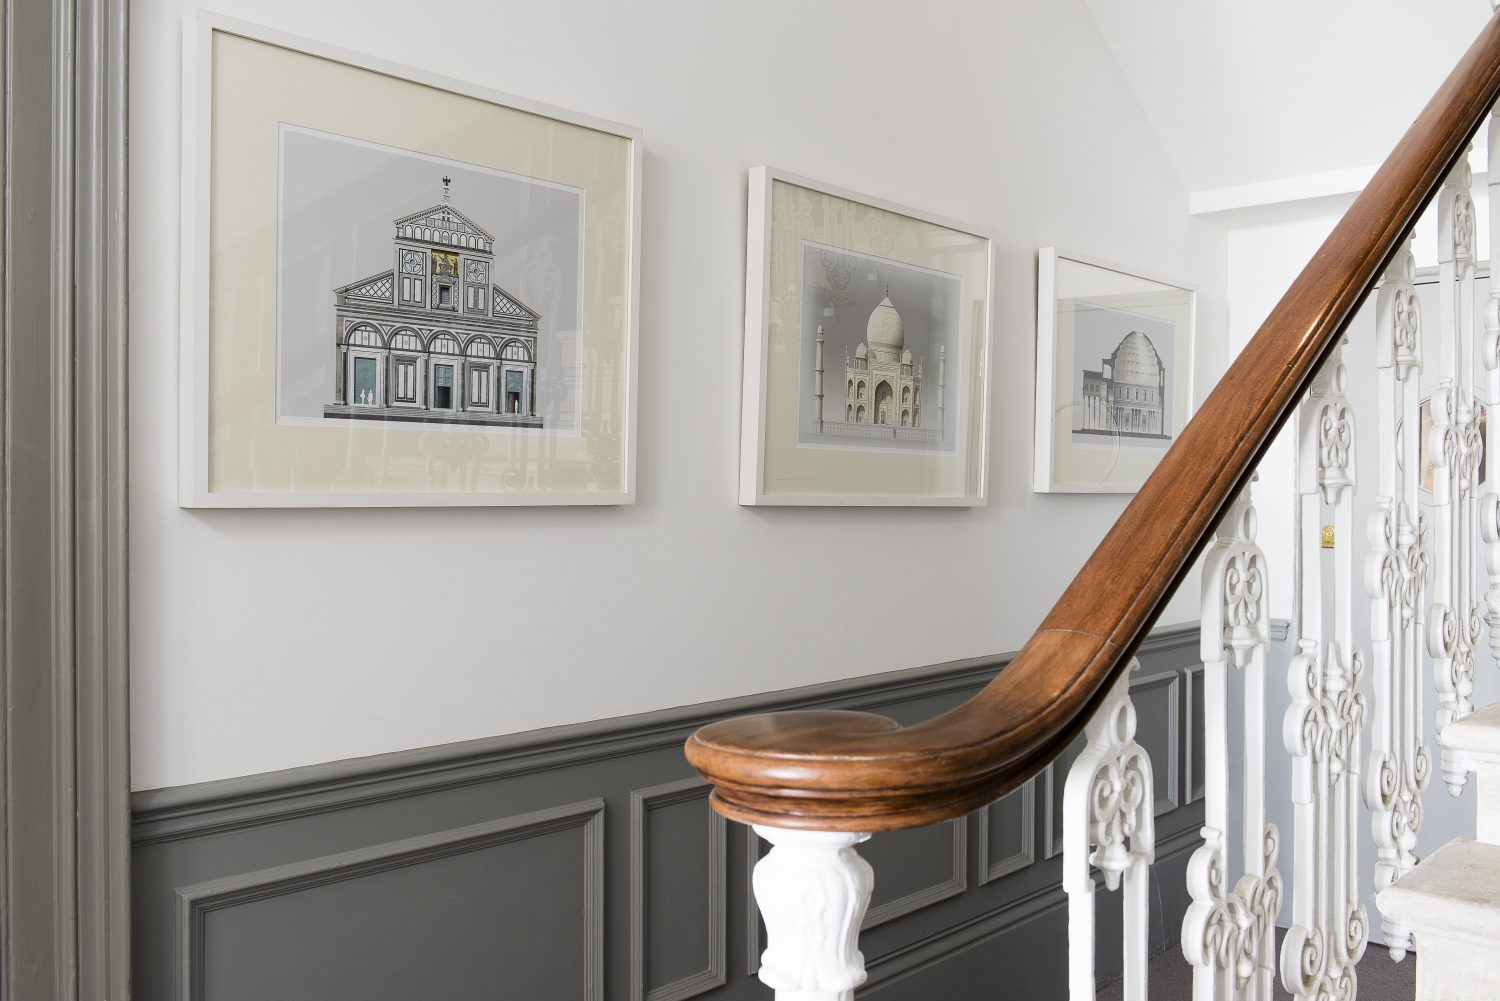 The couple restored the original stone staircase and wrought iron bannisters. Original drawings by Gerry Whale